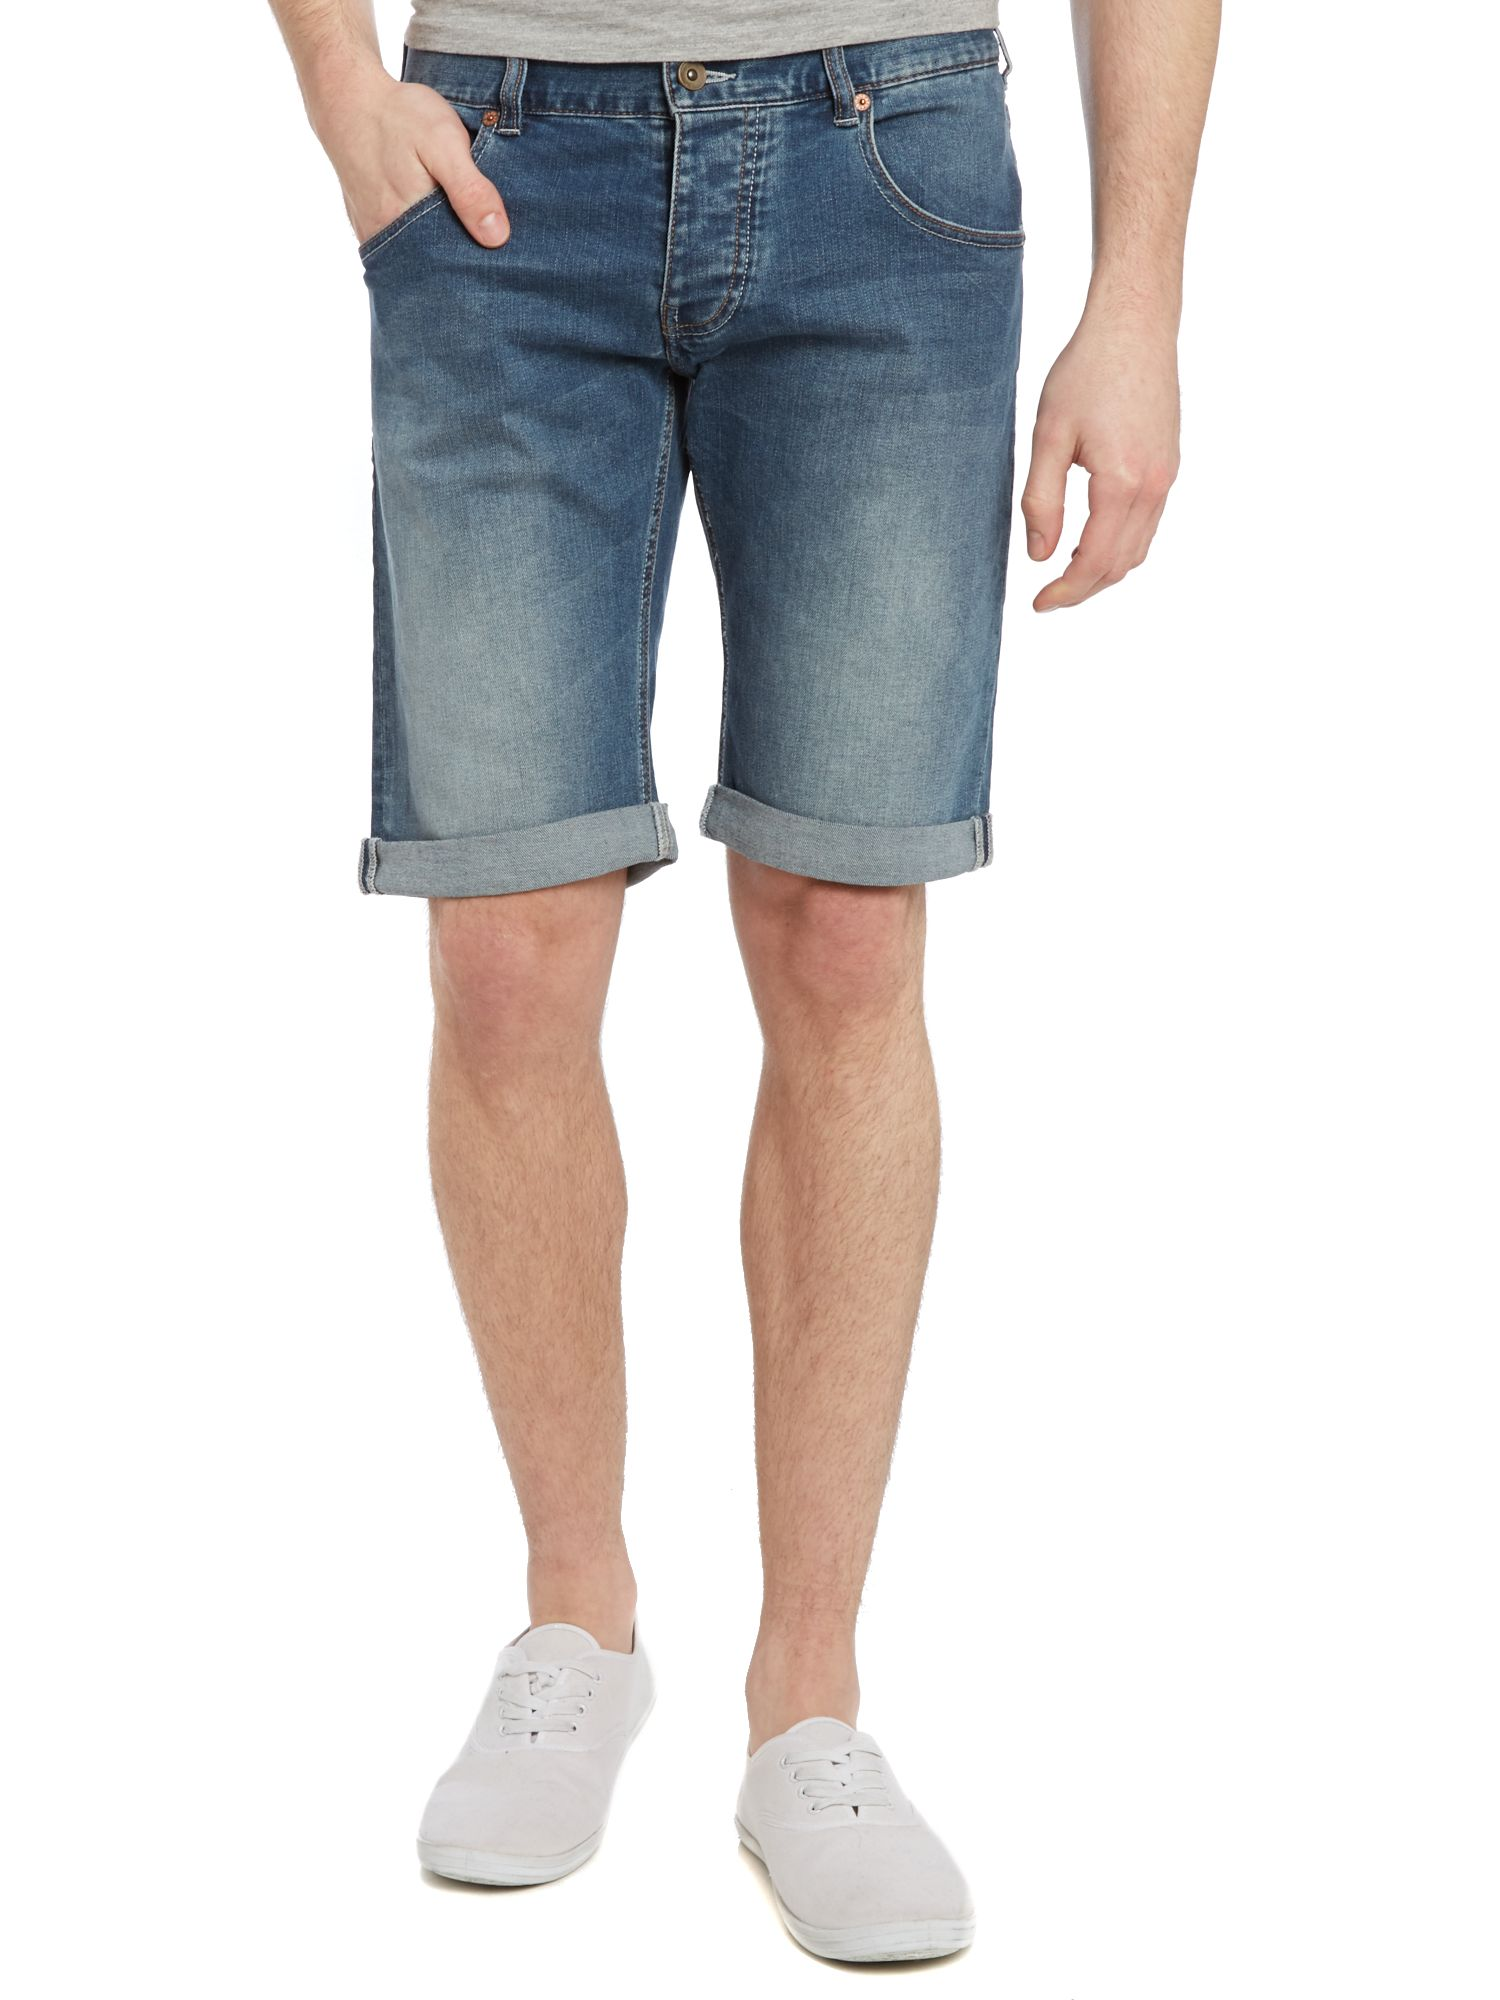 Denim shorts